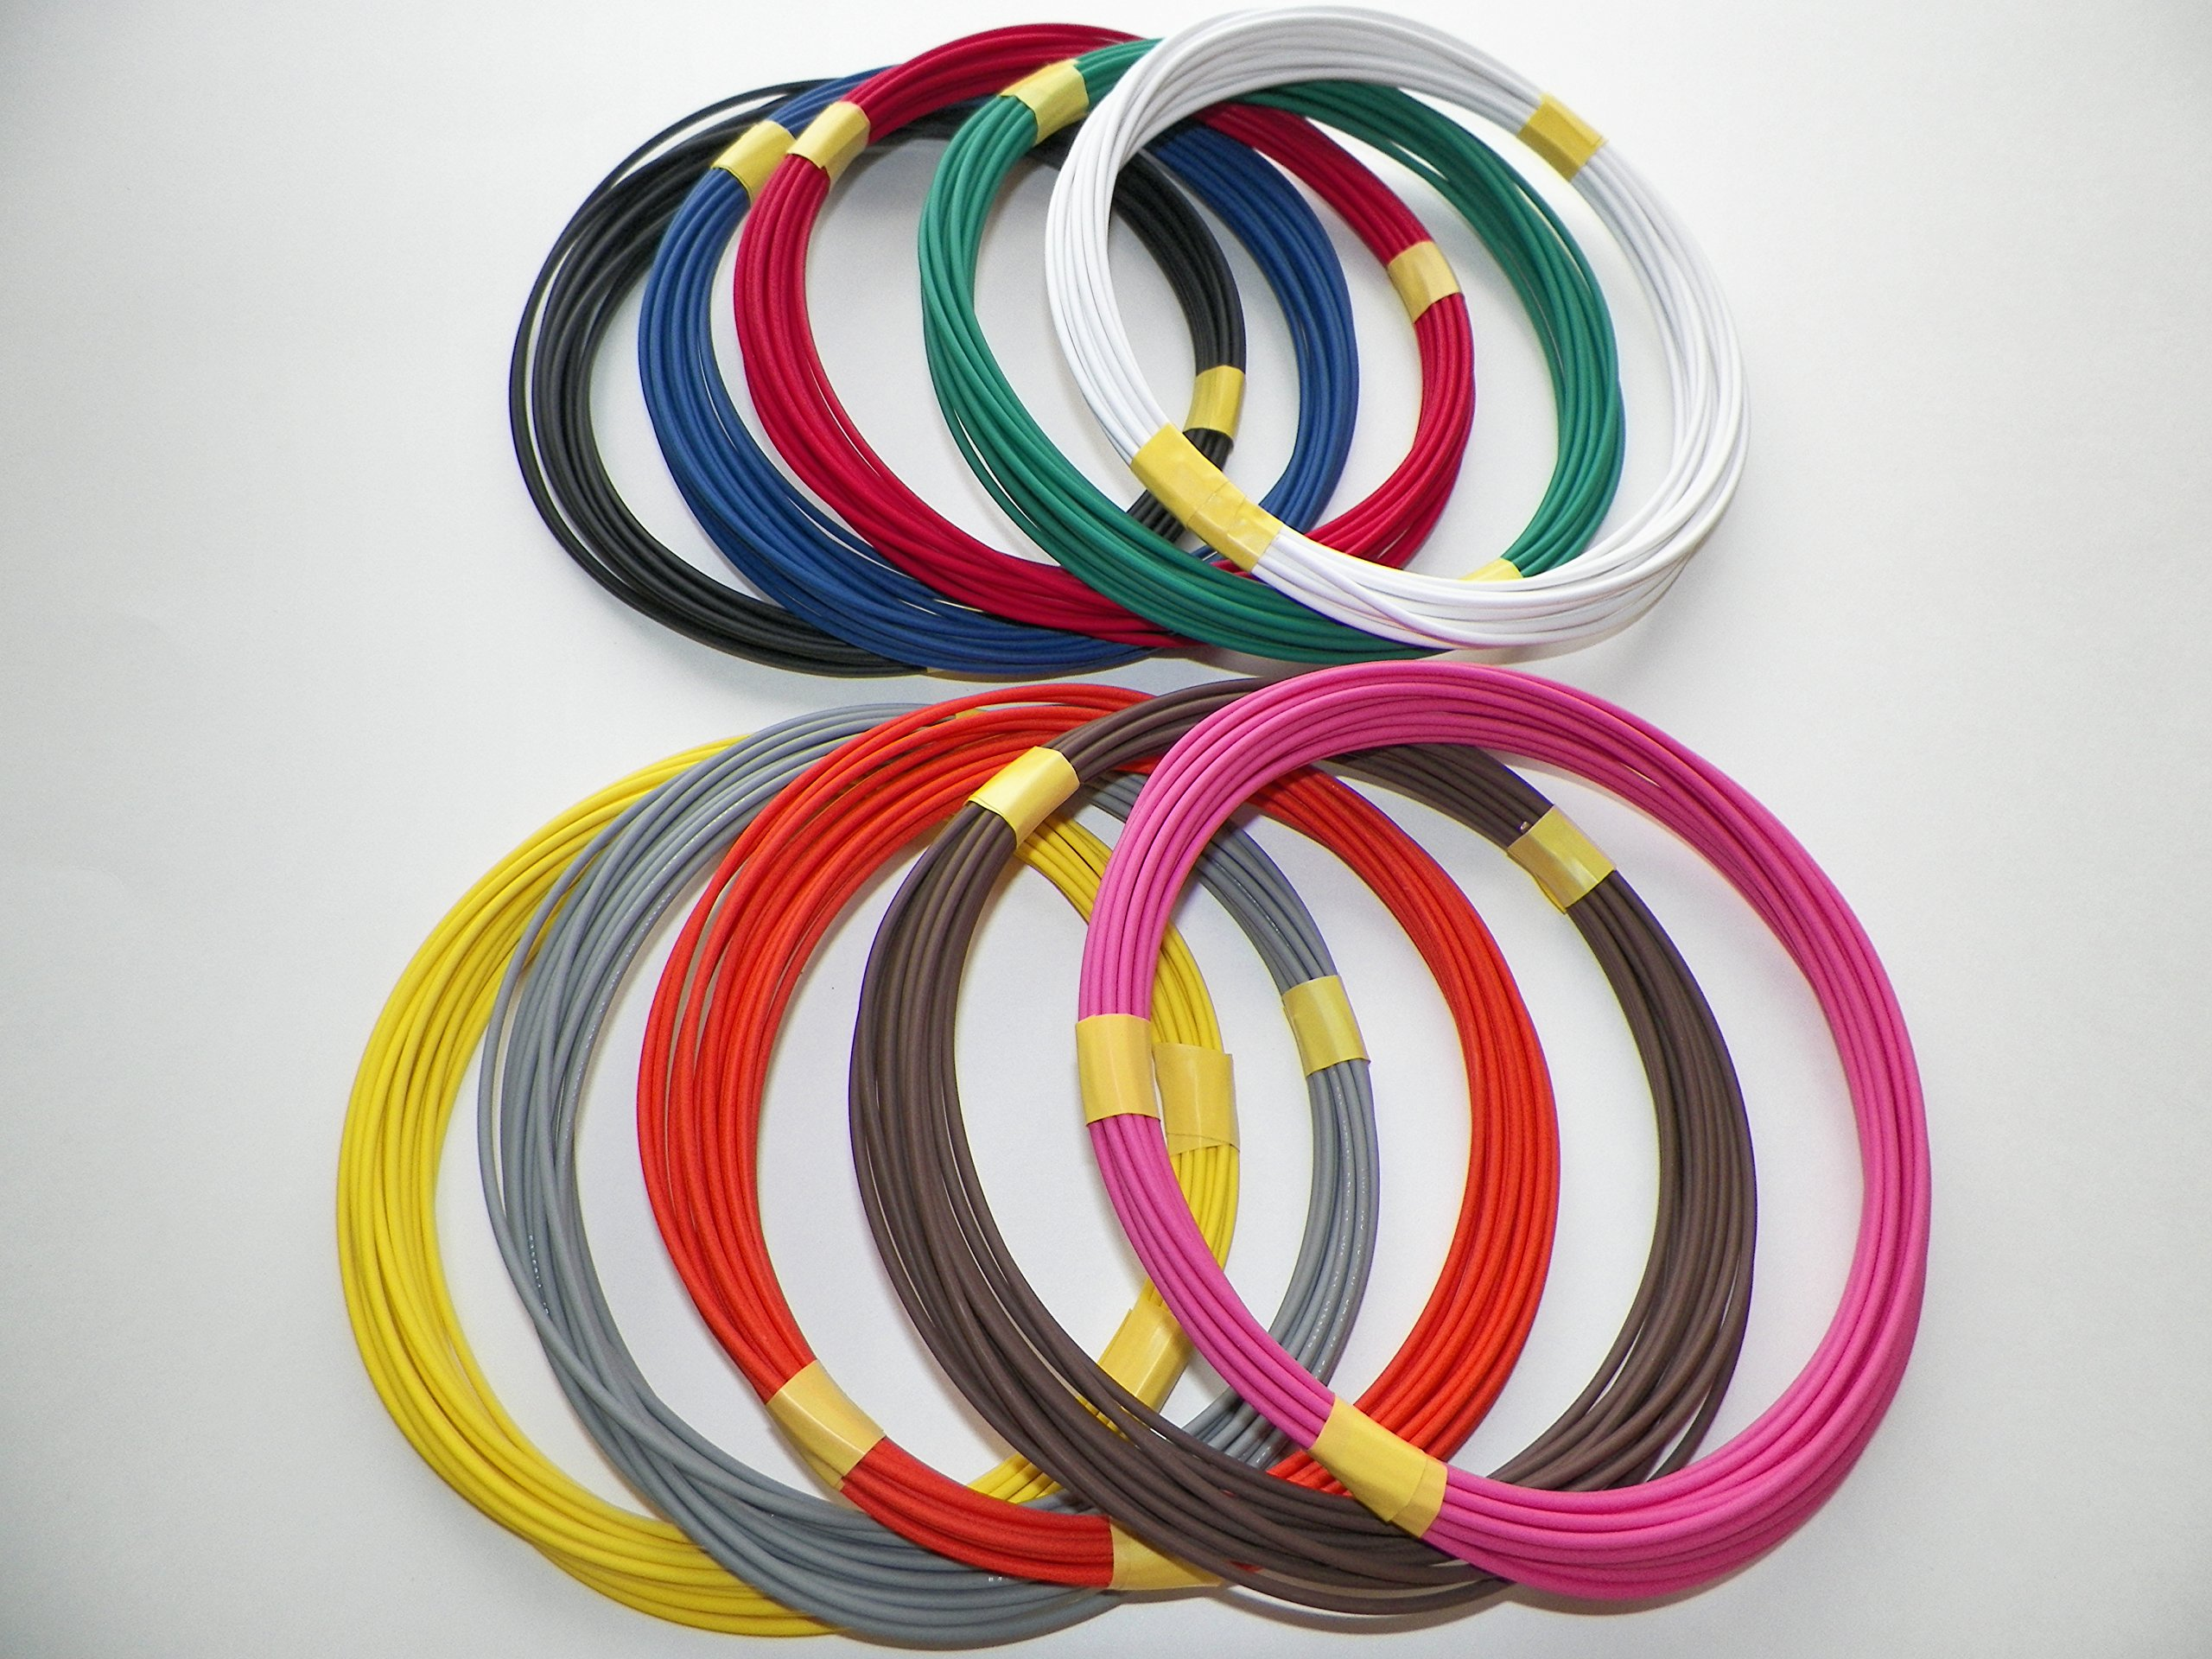 Automotive Copper Wire, GXL, 14 GA, AWG, GAUGE Truck, Motorcycle, RV, General Purpose. Order by 3pm EST Shipped Same Day (10 Colors 25' Each)